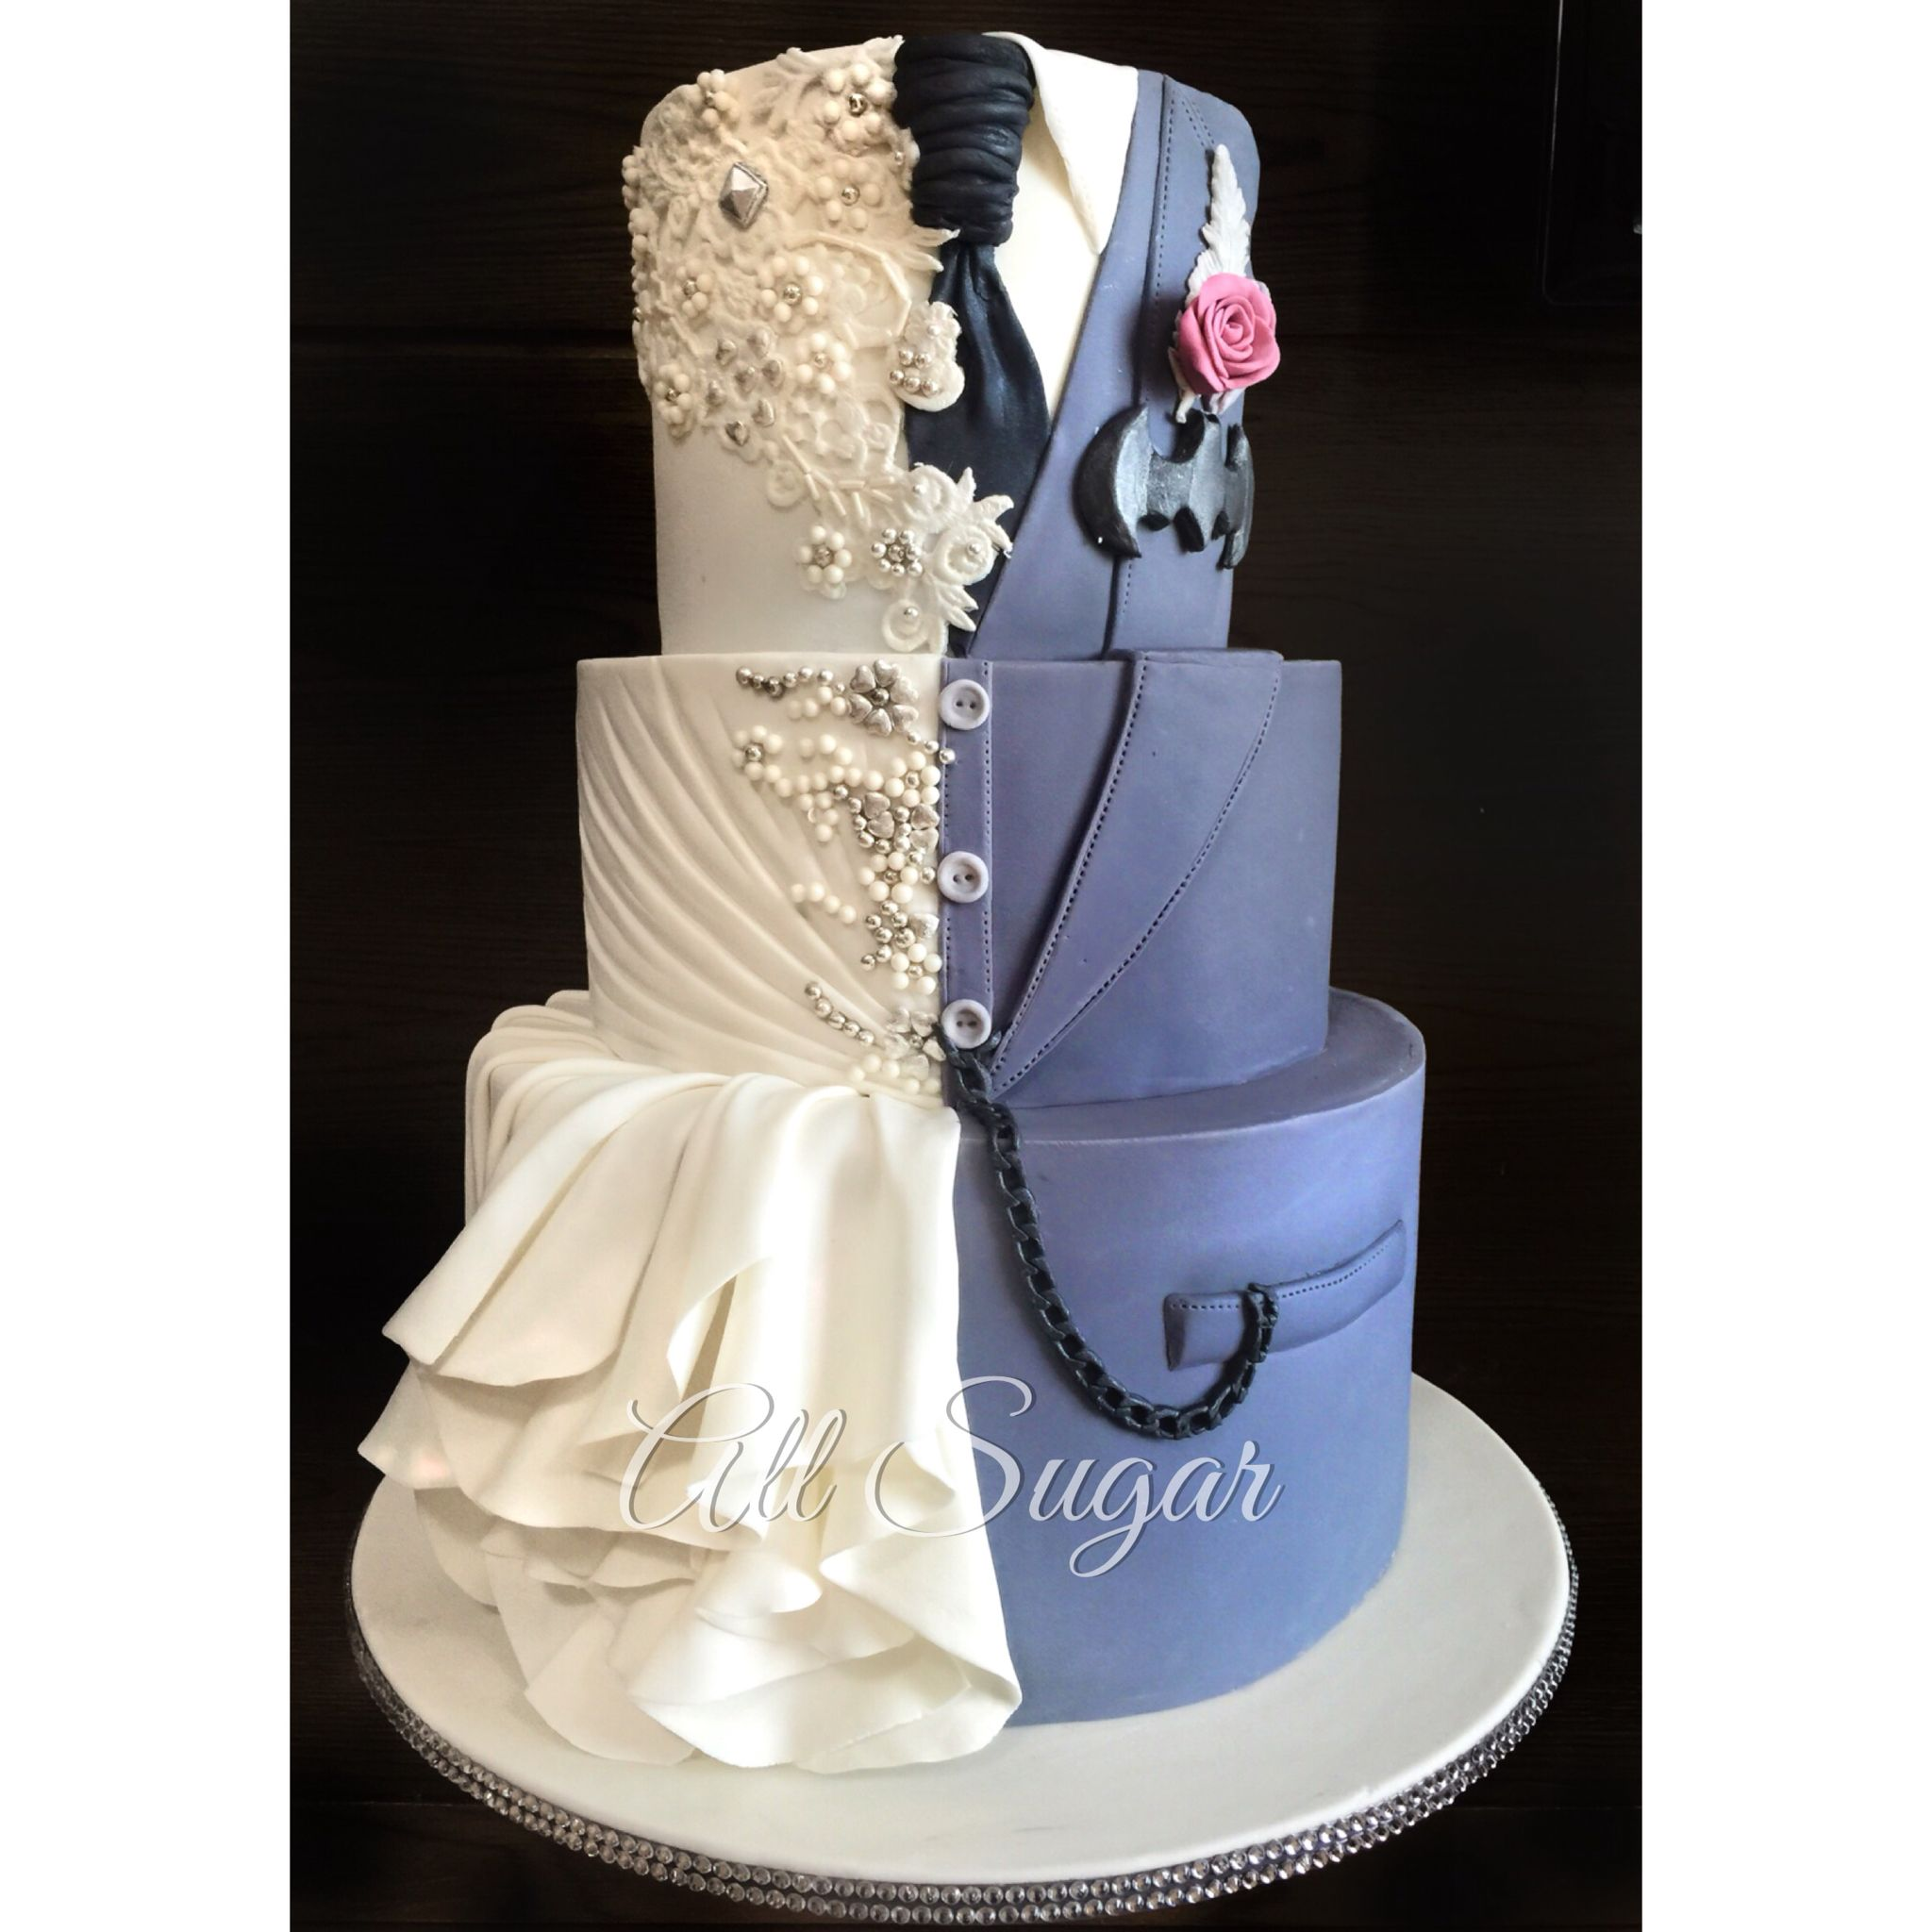 Custom wedding cake Wedding dress inspired wedding cake Dual